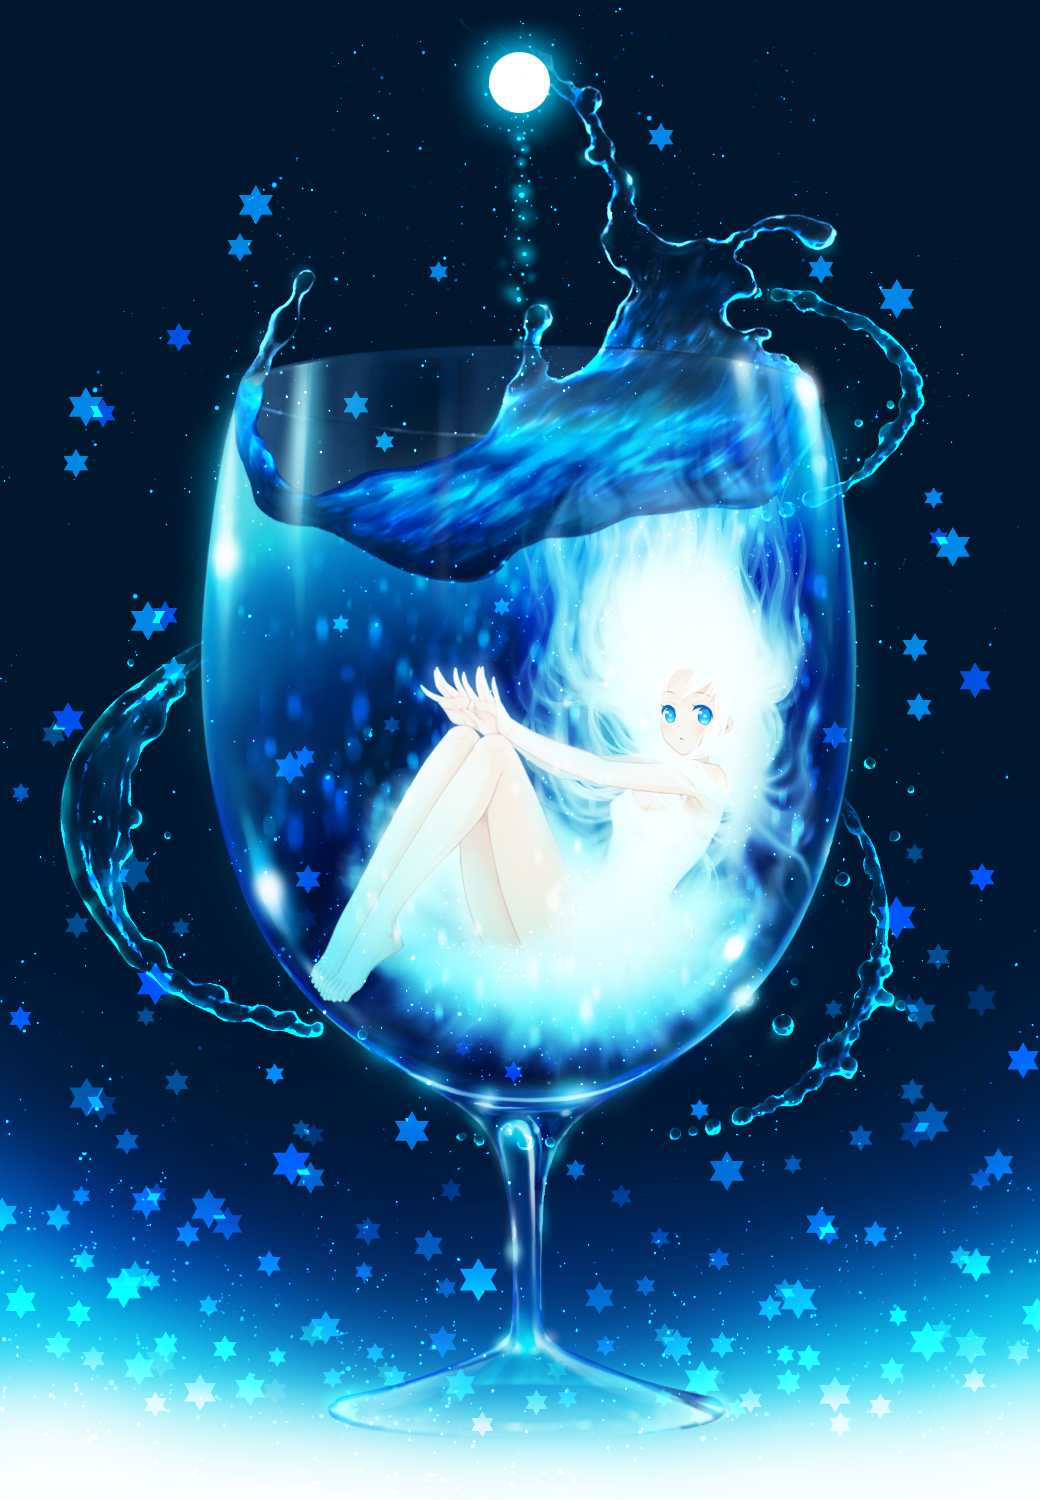 Anime girl in glass of water